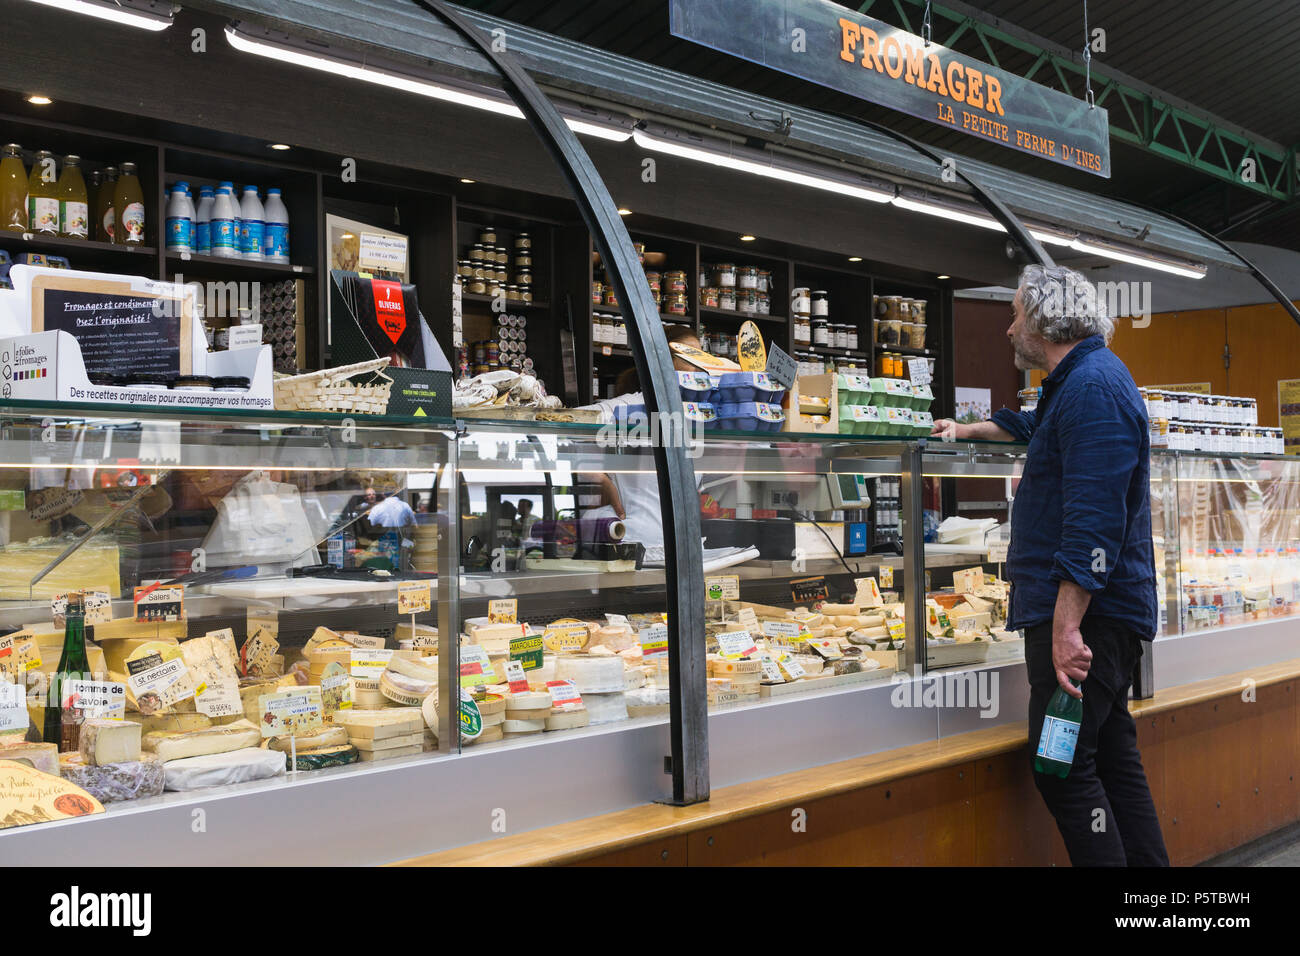 Cheese for sale in a Paris cheese shop (fromagerie) at the Enfants Rouges market, France. - Stock Image